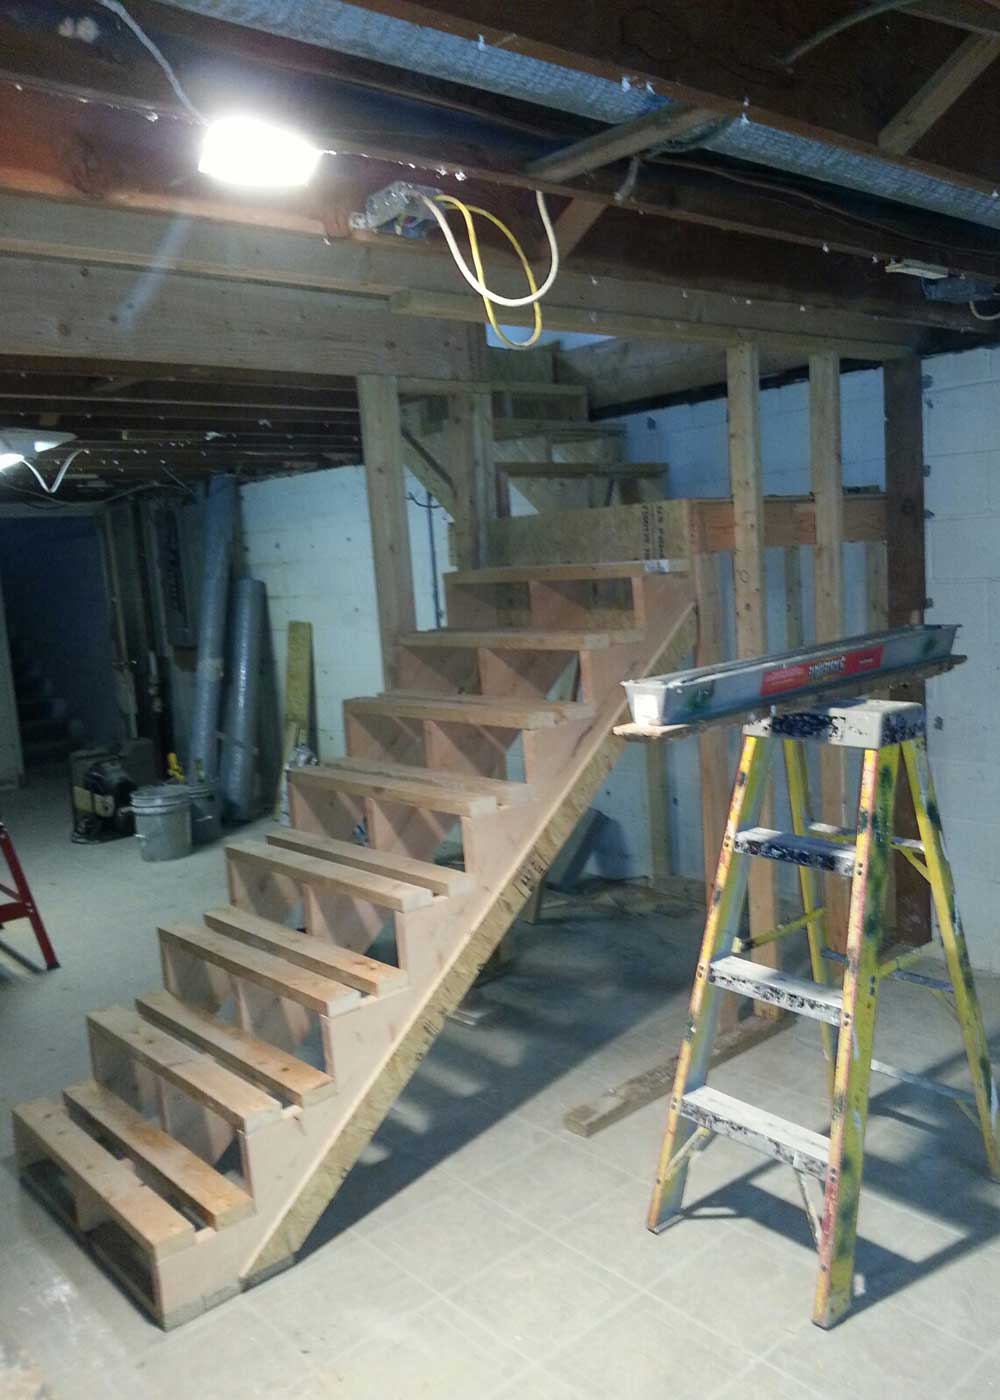 Snap Building The Stairs And Installation Spackle Sawdust Photos On Stairsstaircaseconstructiondiagram Anyone Making Winter Techtalk Speaker Audio Video Discussion Forum